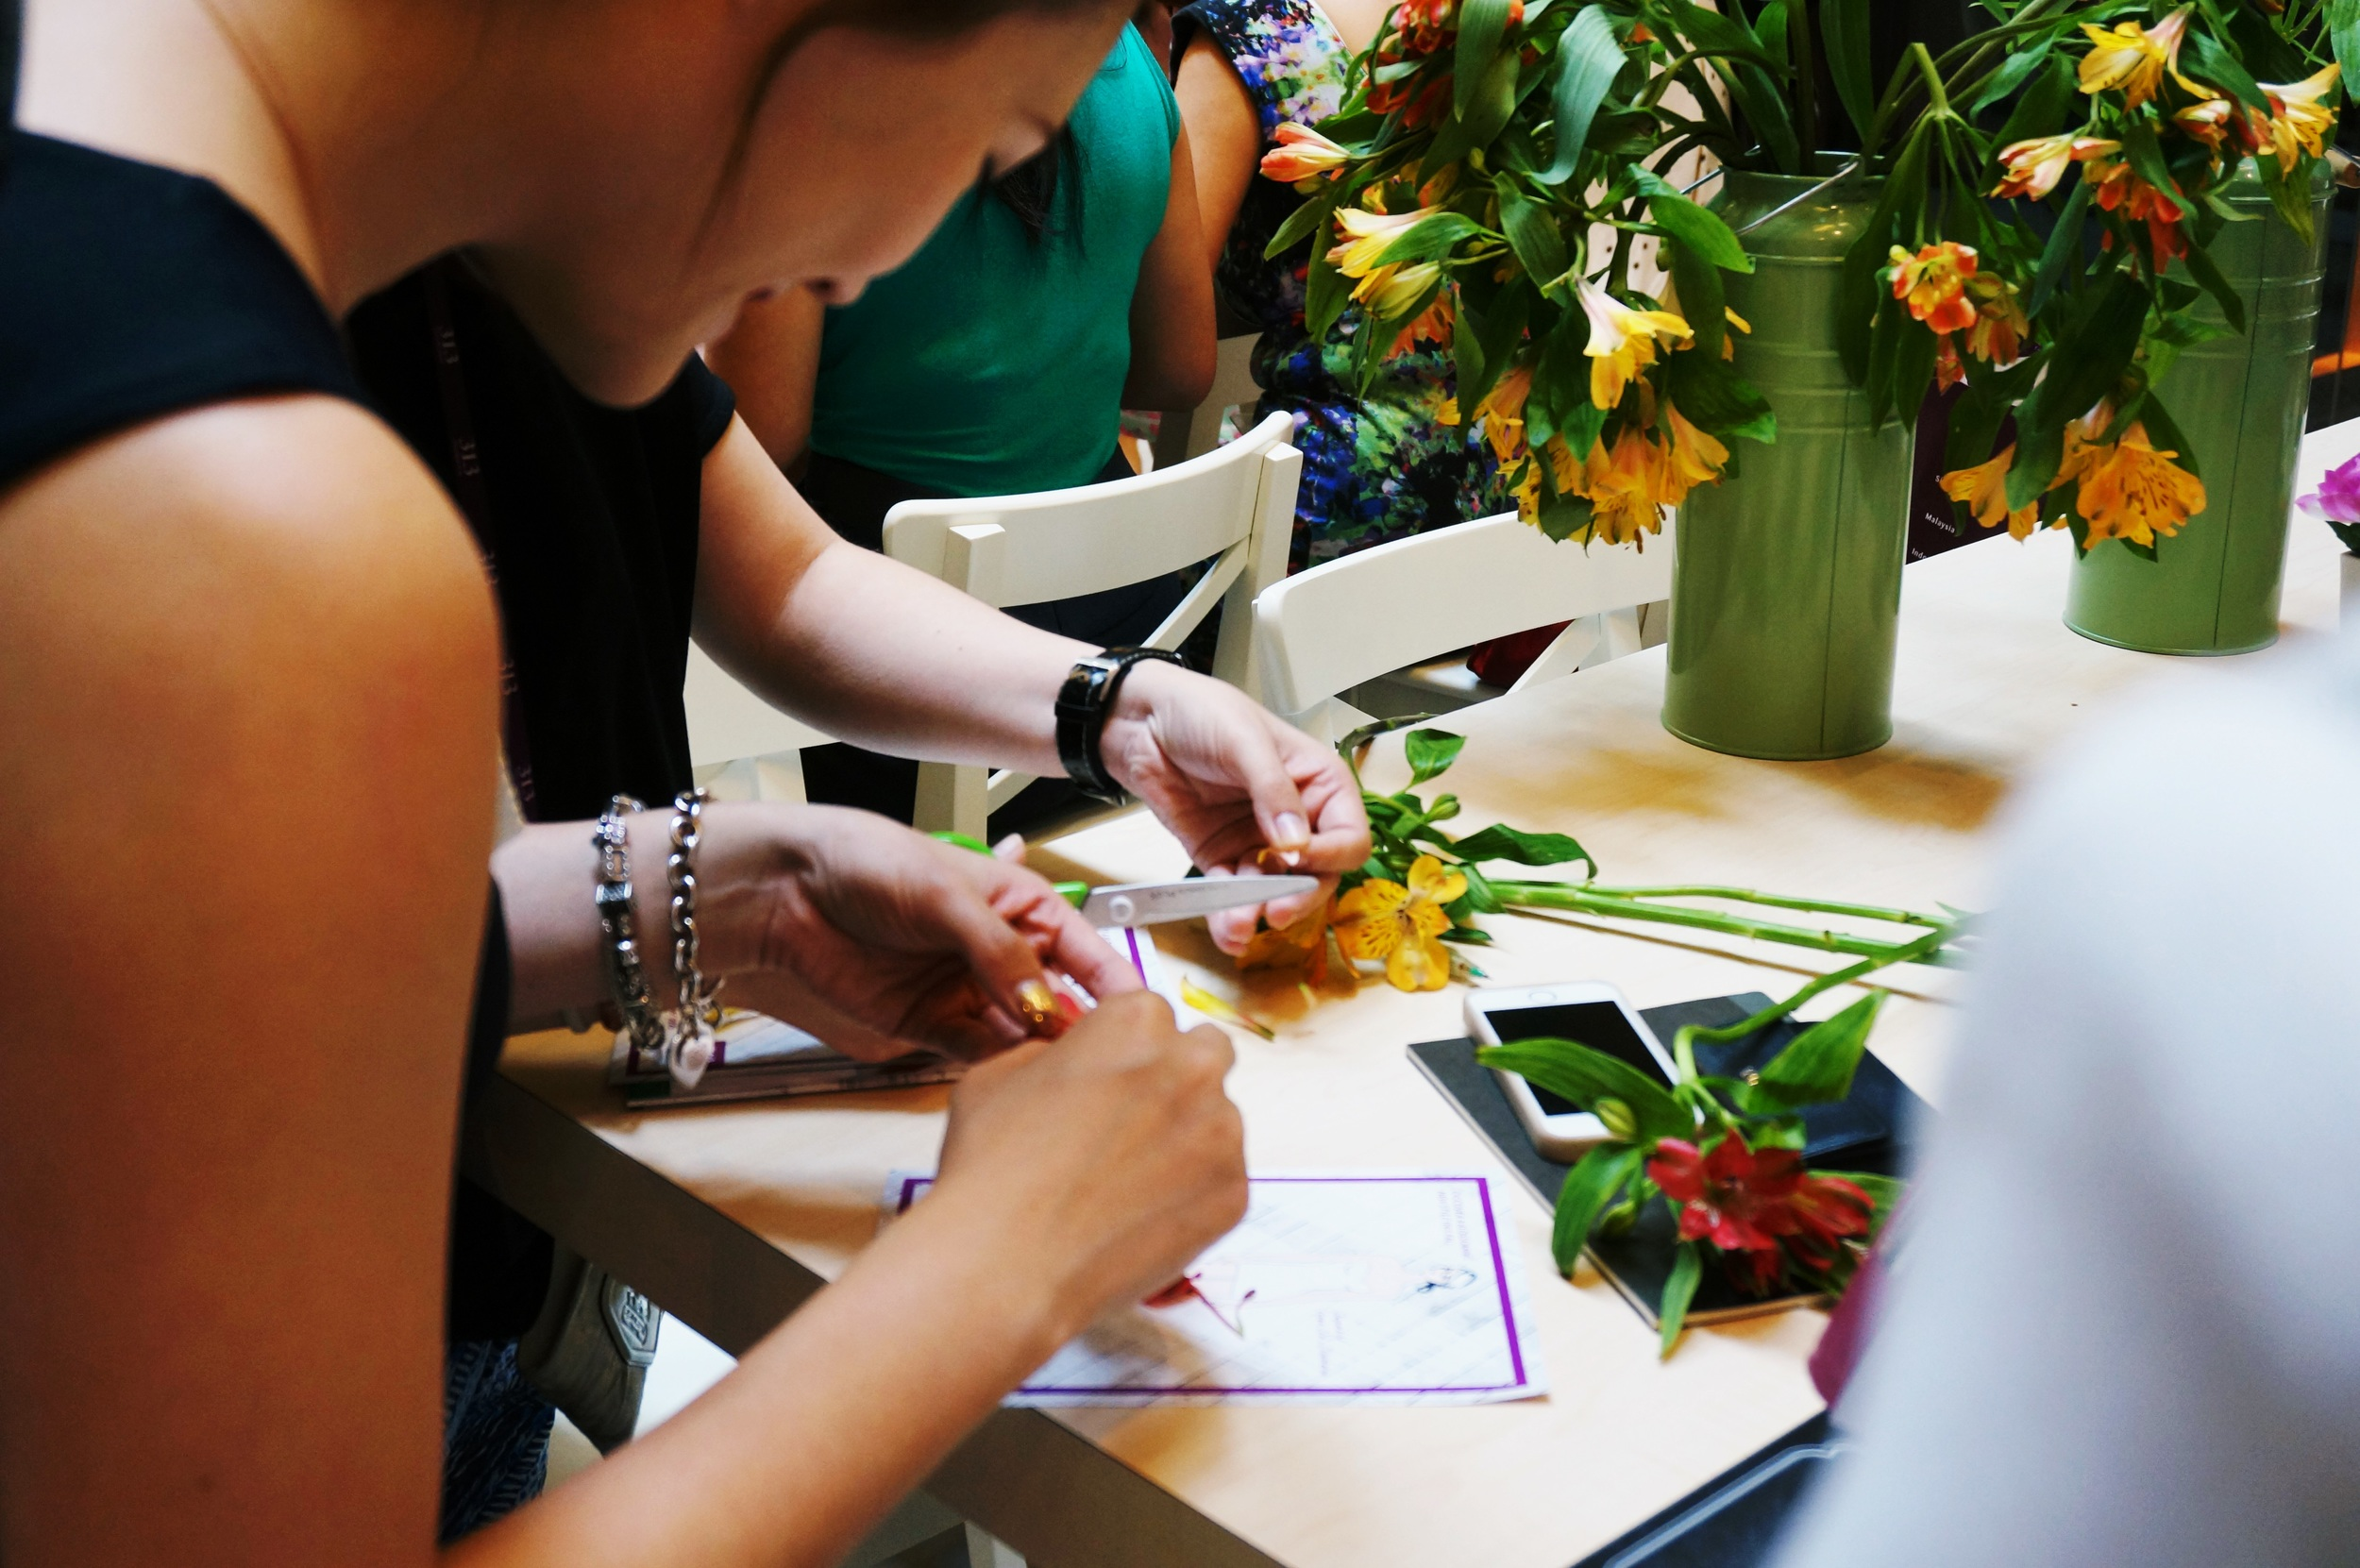 Grace-ciao-fashion-illustrator-retail-mall-live-illustration-workshop-petals-floral-workshop-participants.jpg